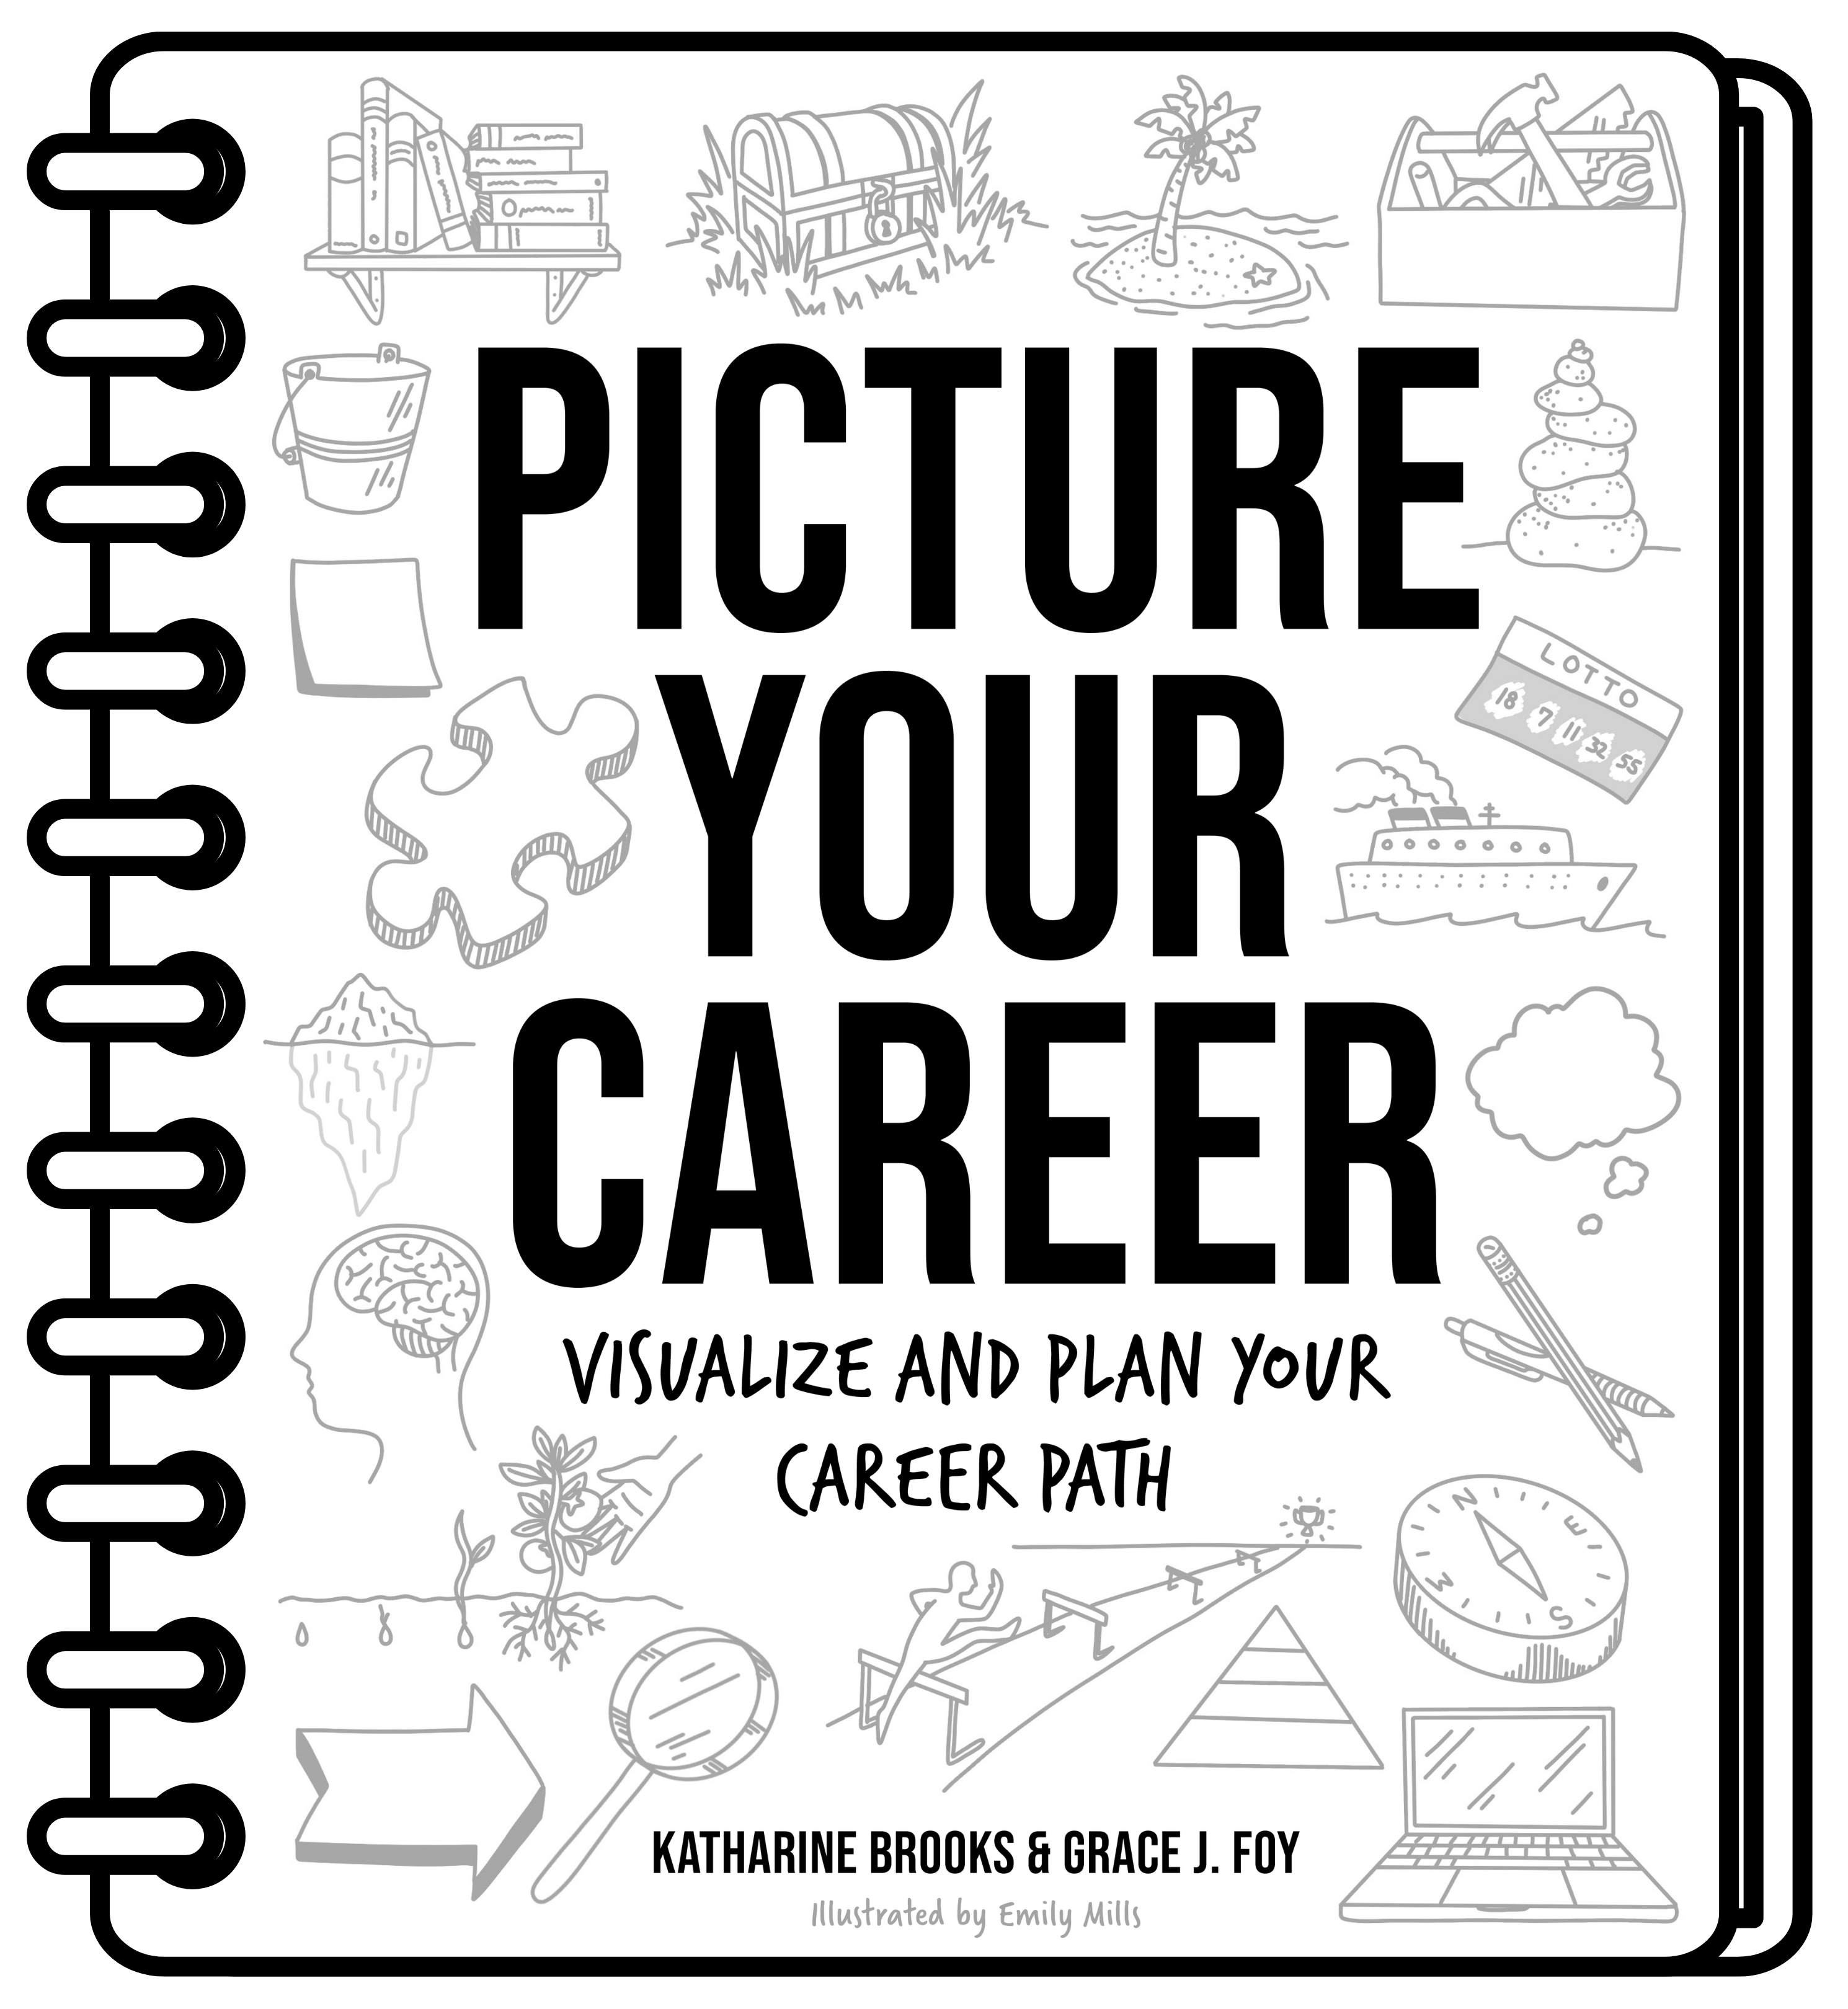 picture of Picture Your Career's workbook cover